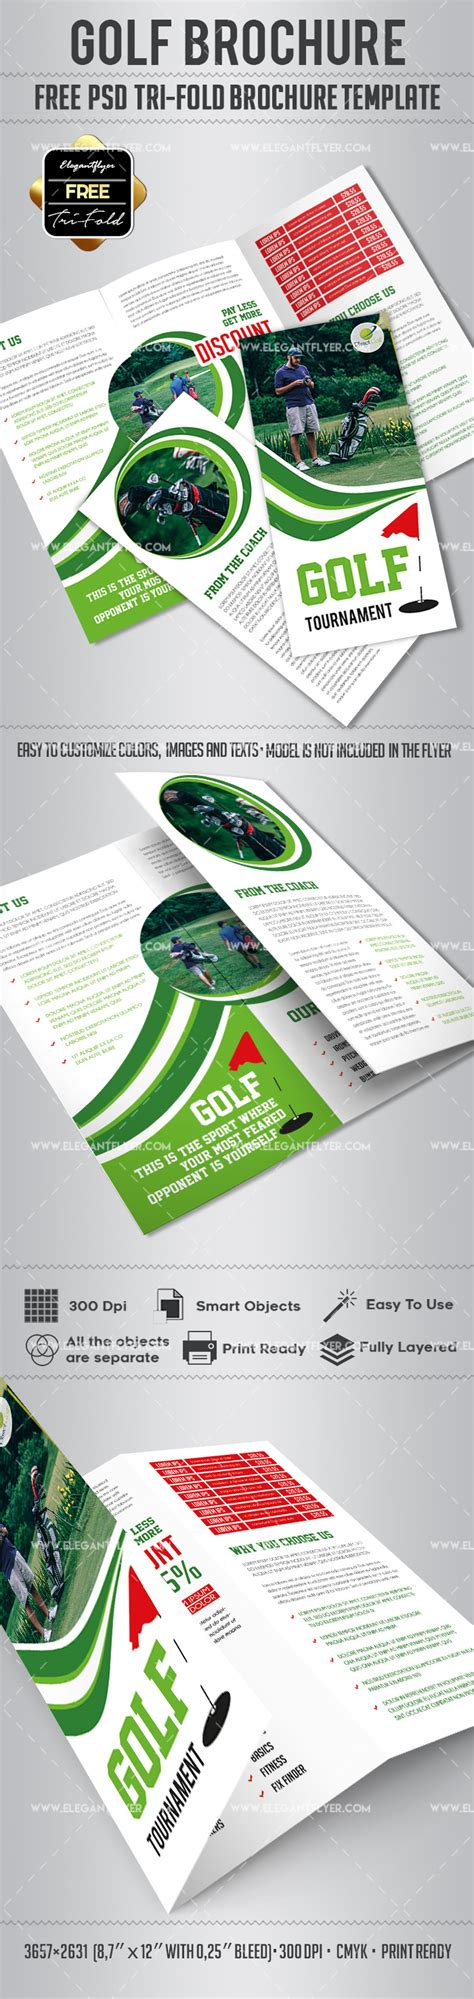 3d Brochure Templates Psd by Golf Free Psd Tri Fold Psd Brochure Template By